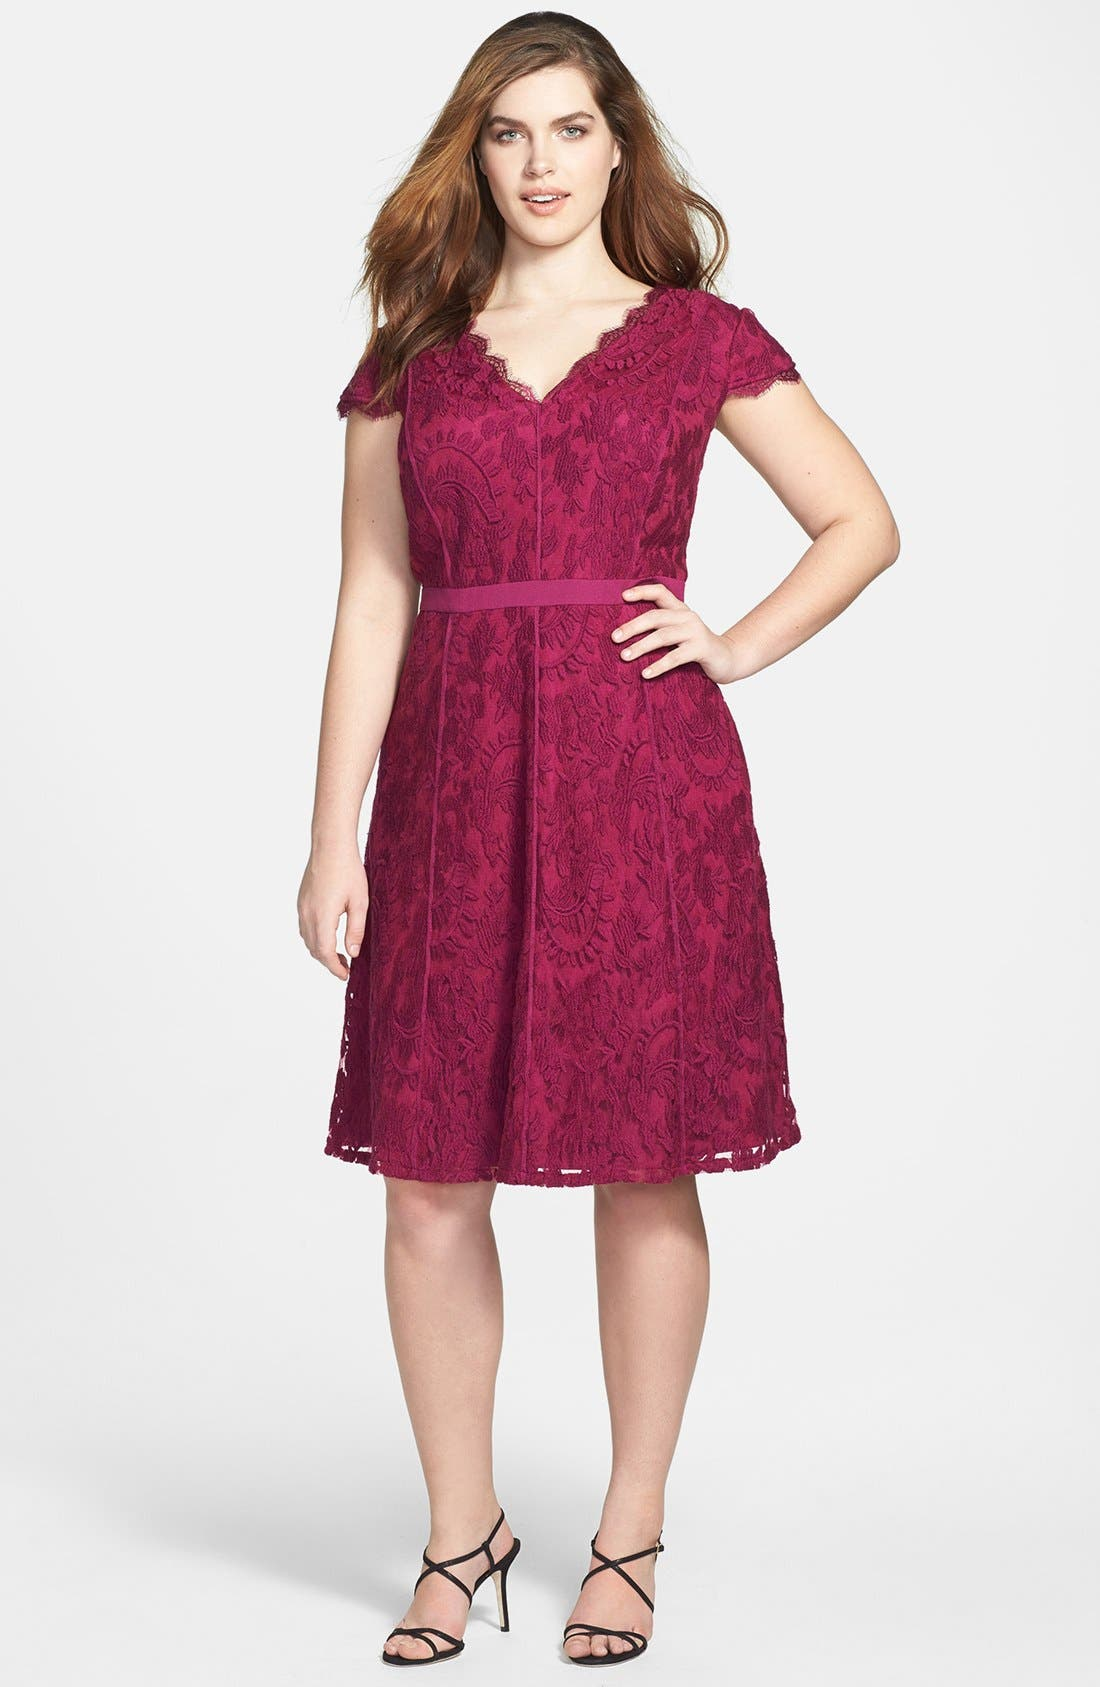 Alternate Image 1 Selected - Adrianna Papell Cap Sleeve Lace Fit & Flare Dress (Plus Size)